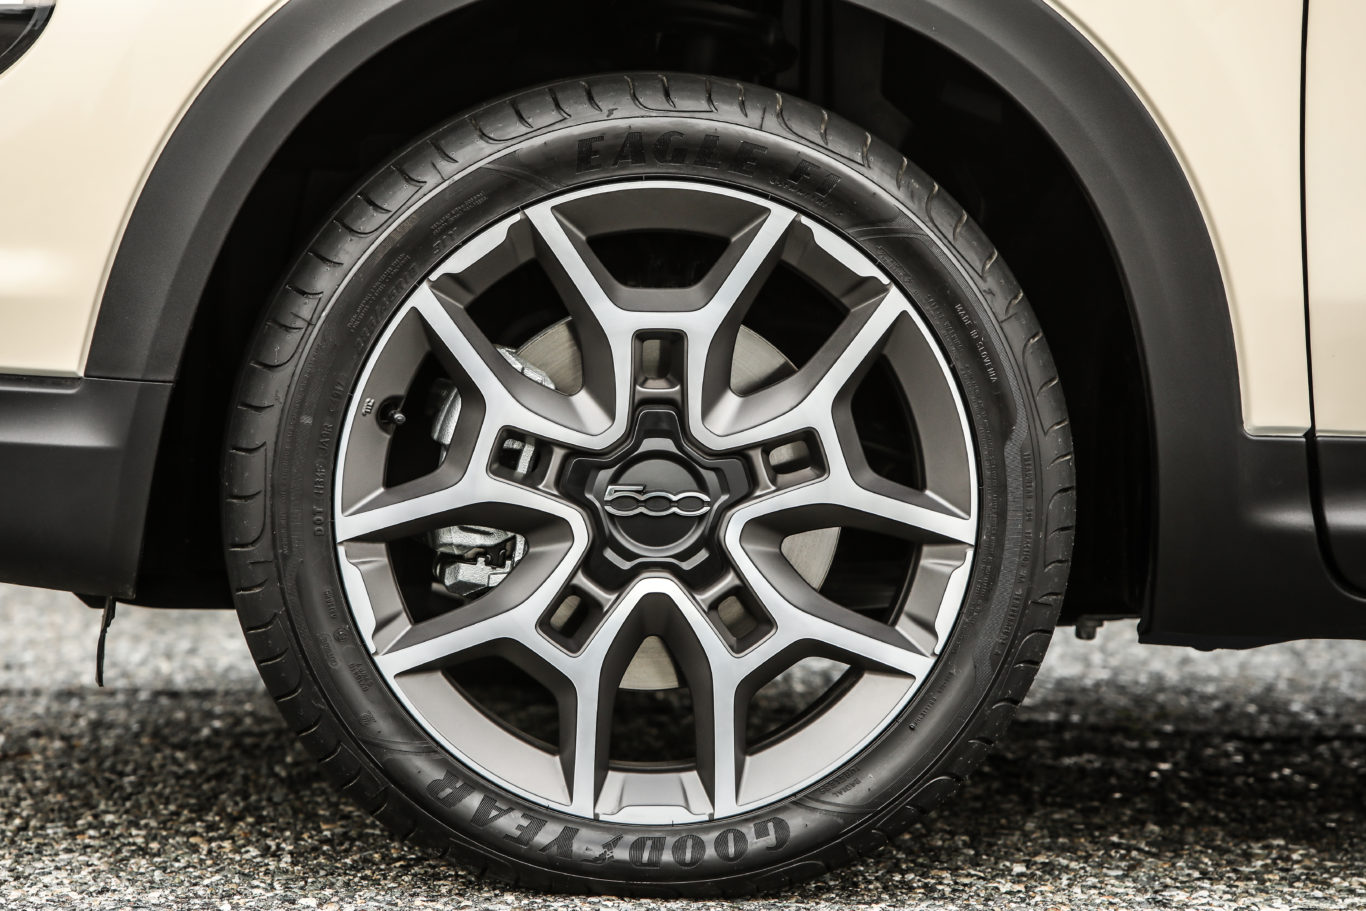 Large alloy wheels give the car plenty of presence